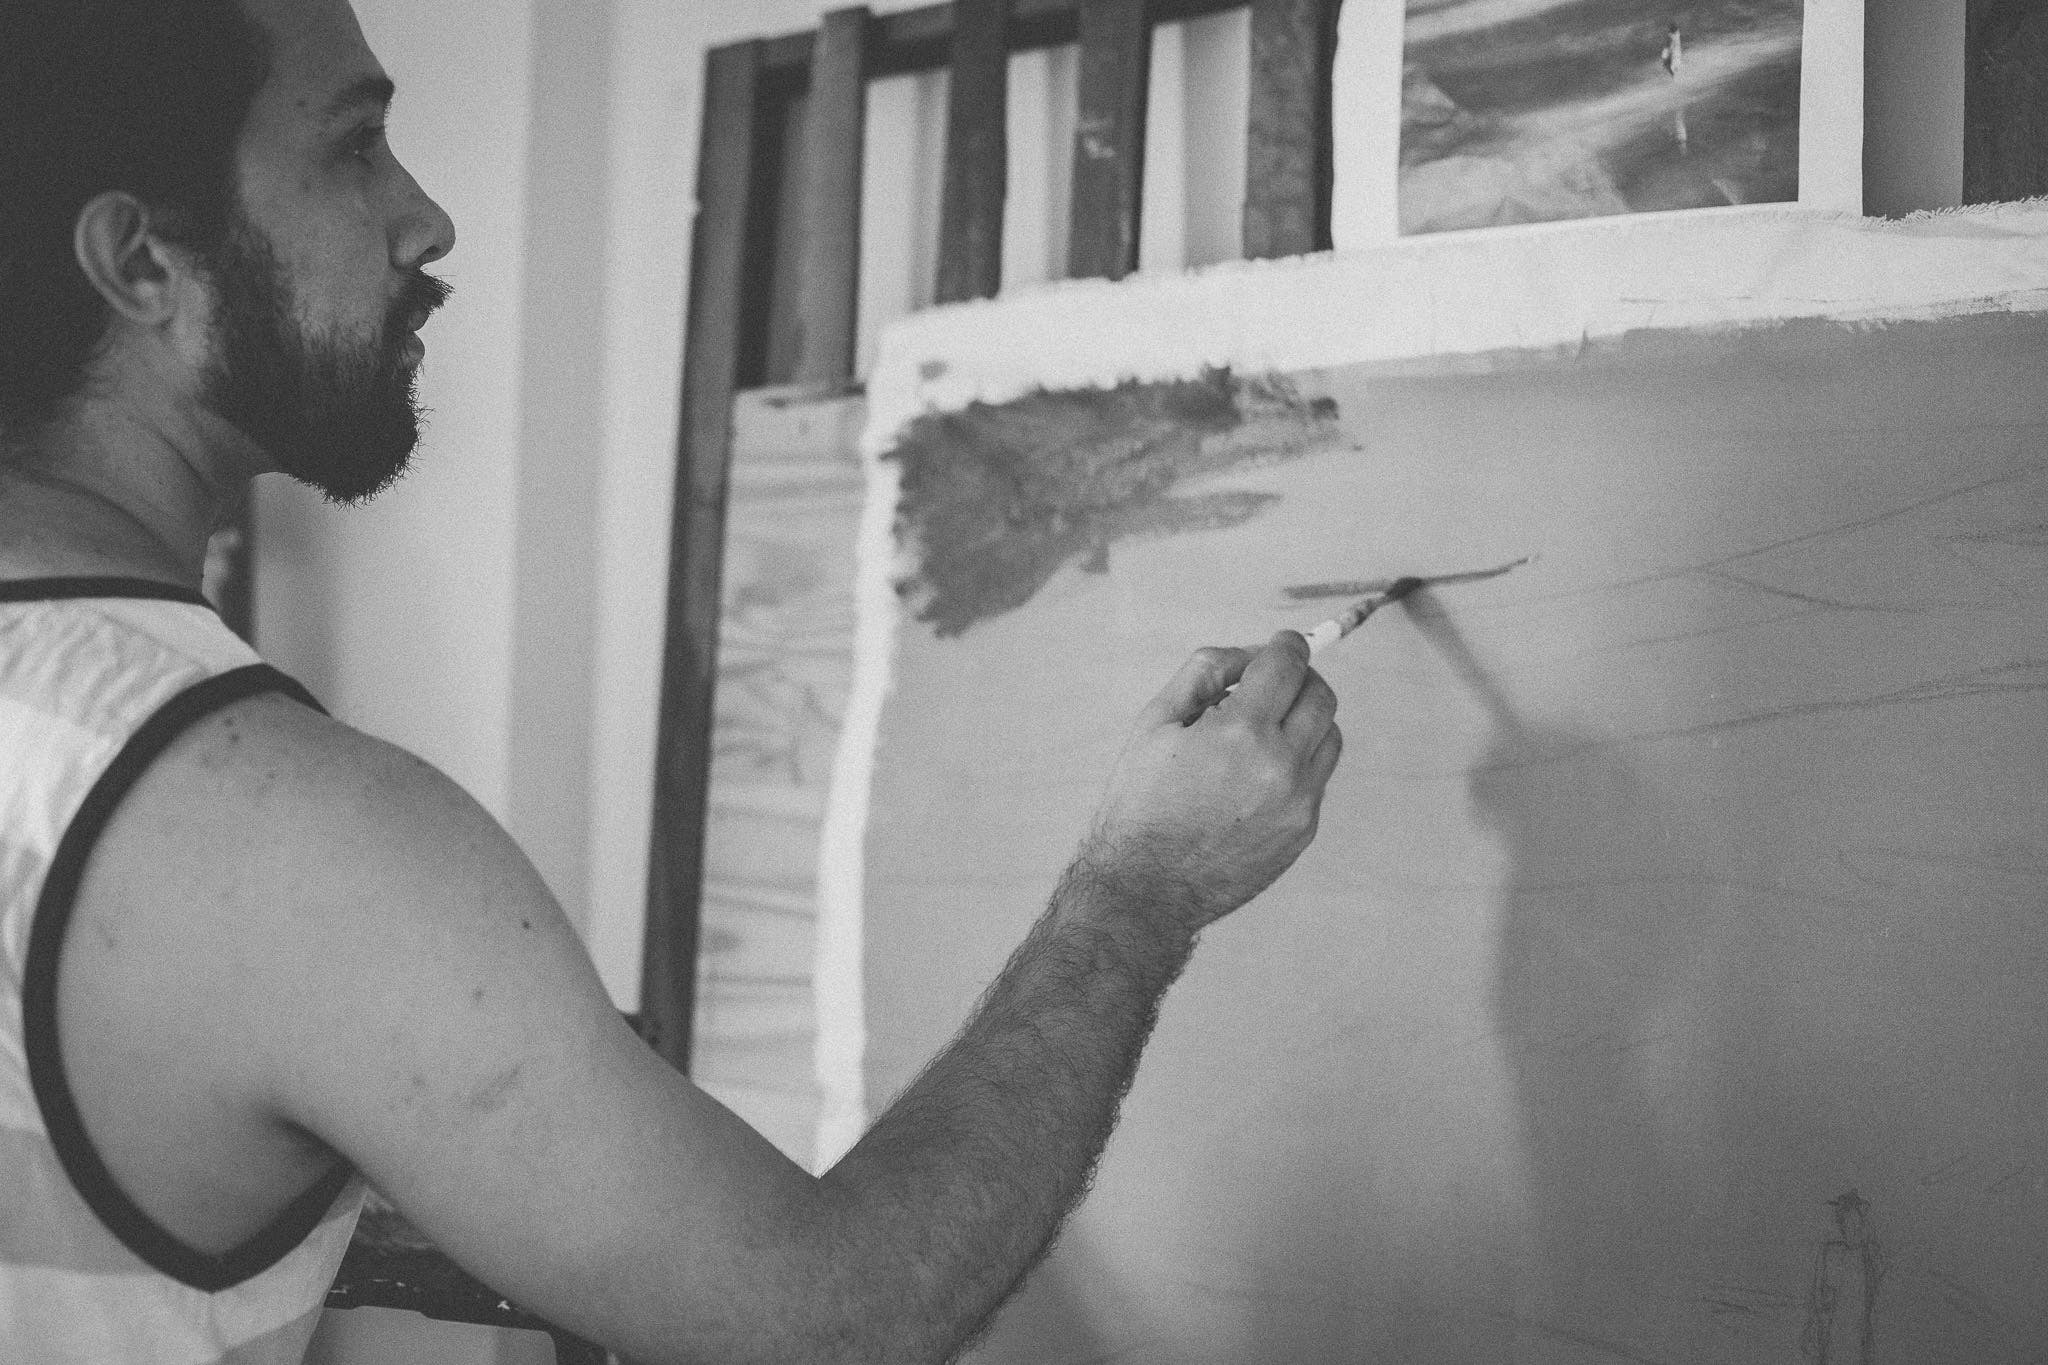 Grayscale Photo of Man Painting